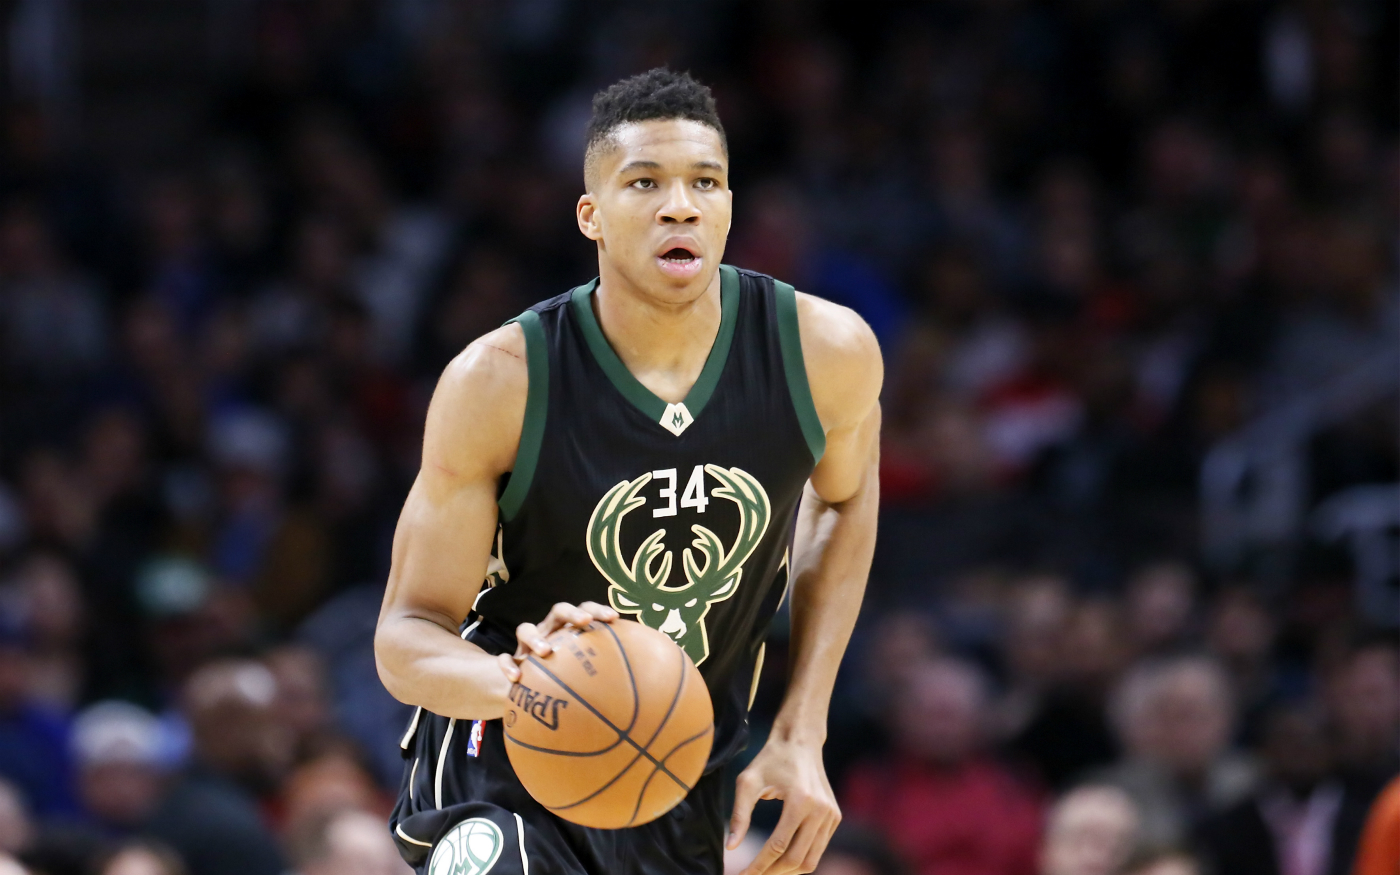 Le Greek Freak, un mix de